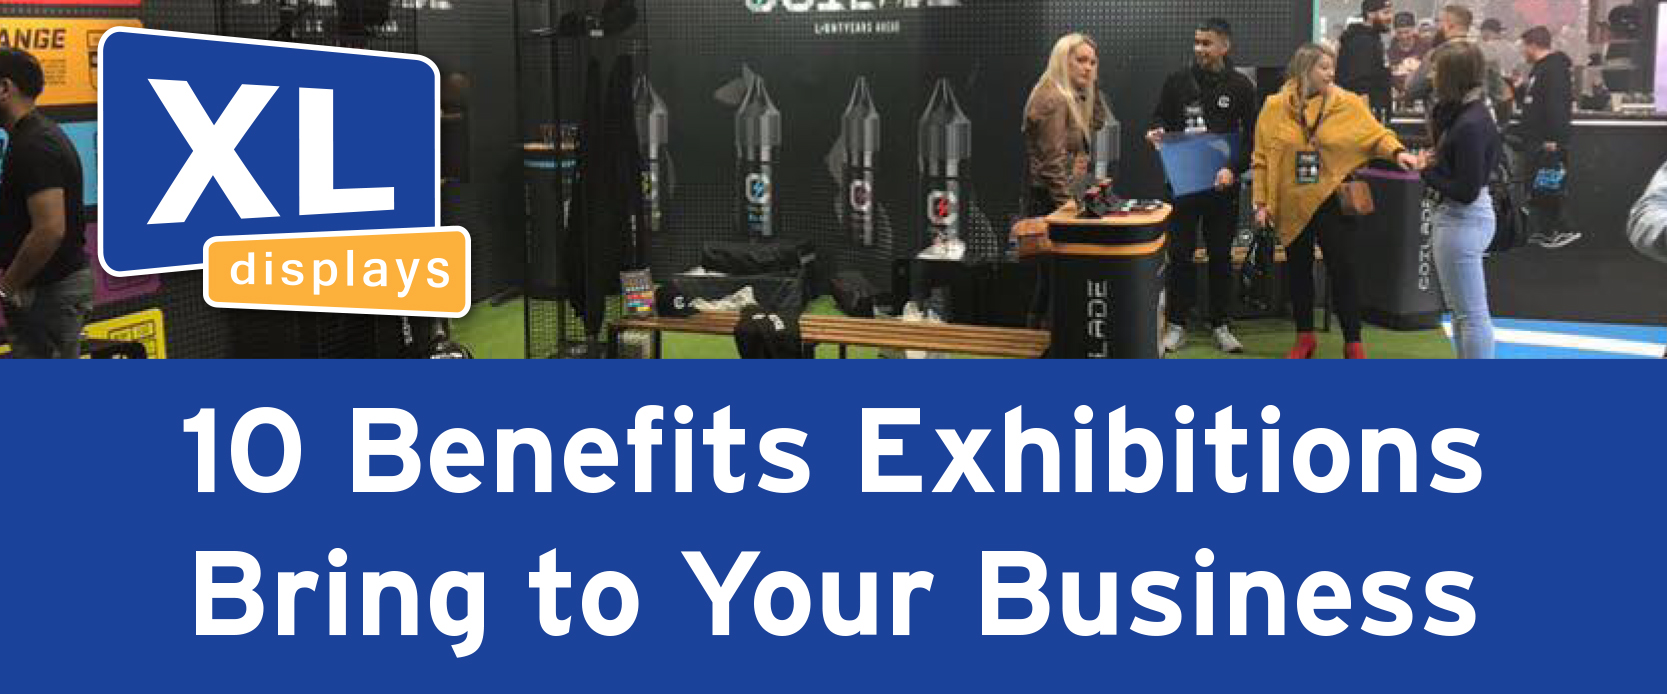 10 Benefits Exhibitions Bring to Your Business